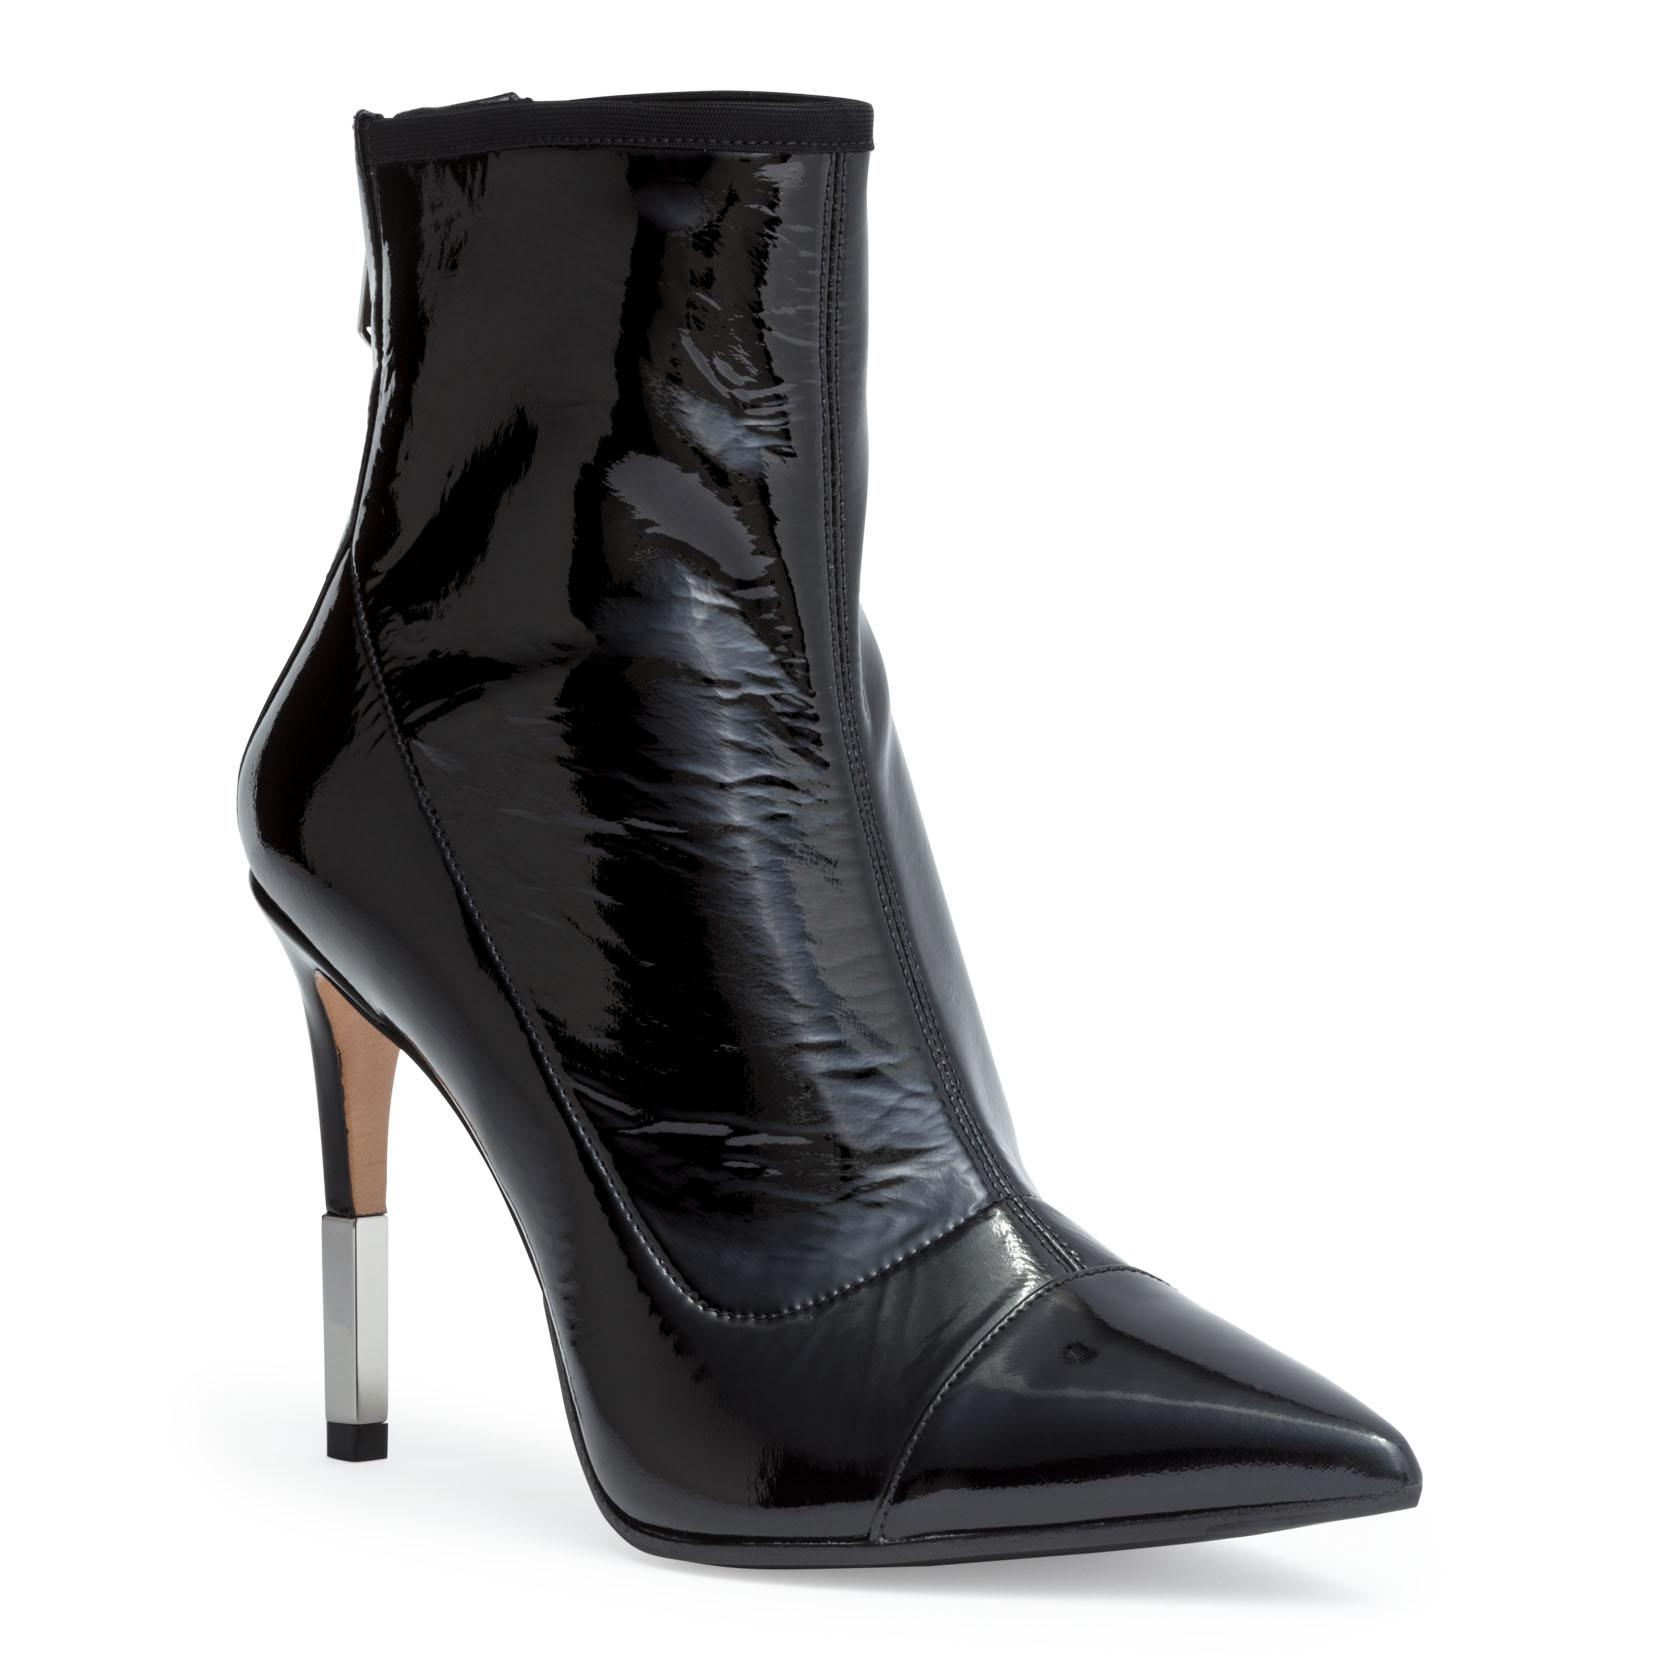 Balmain 110Mm Blair Patent Leather Ankle Boots In Black